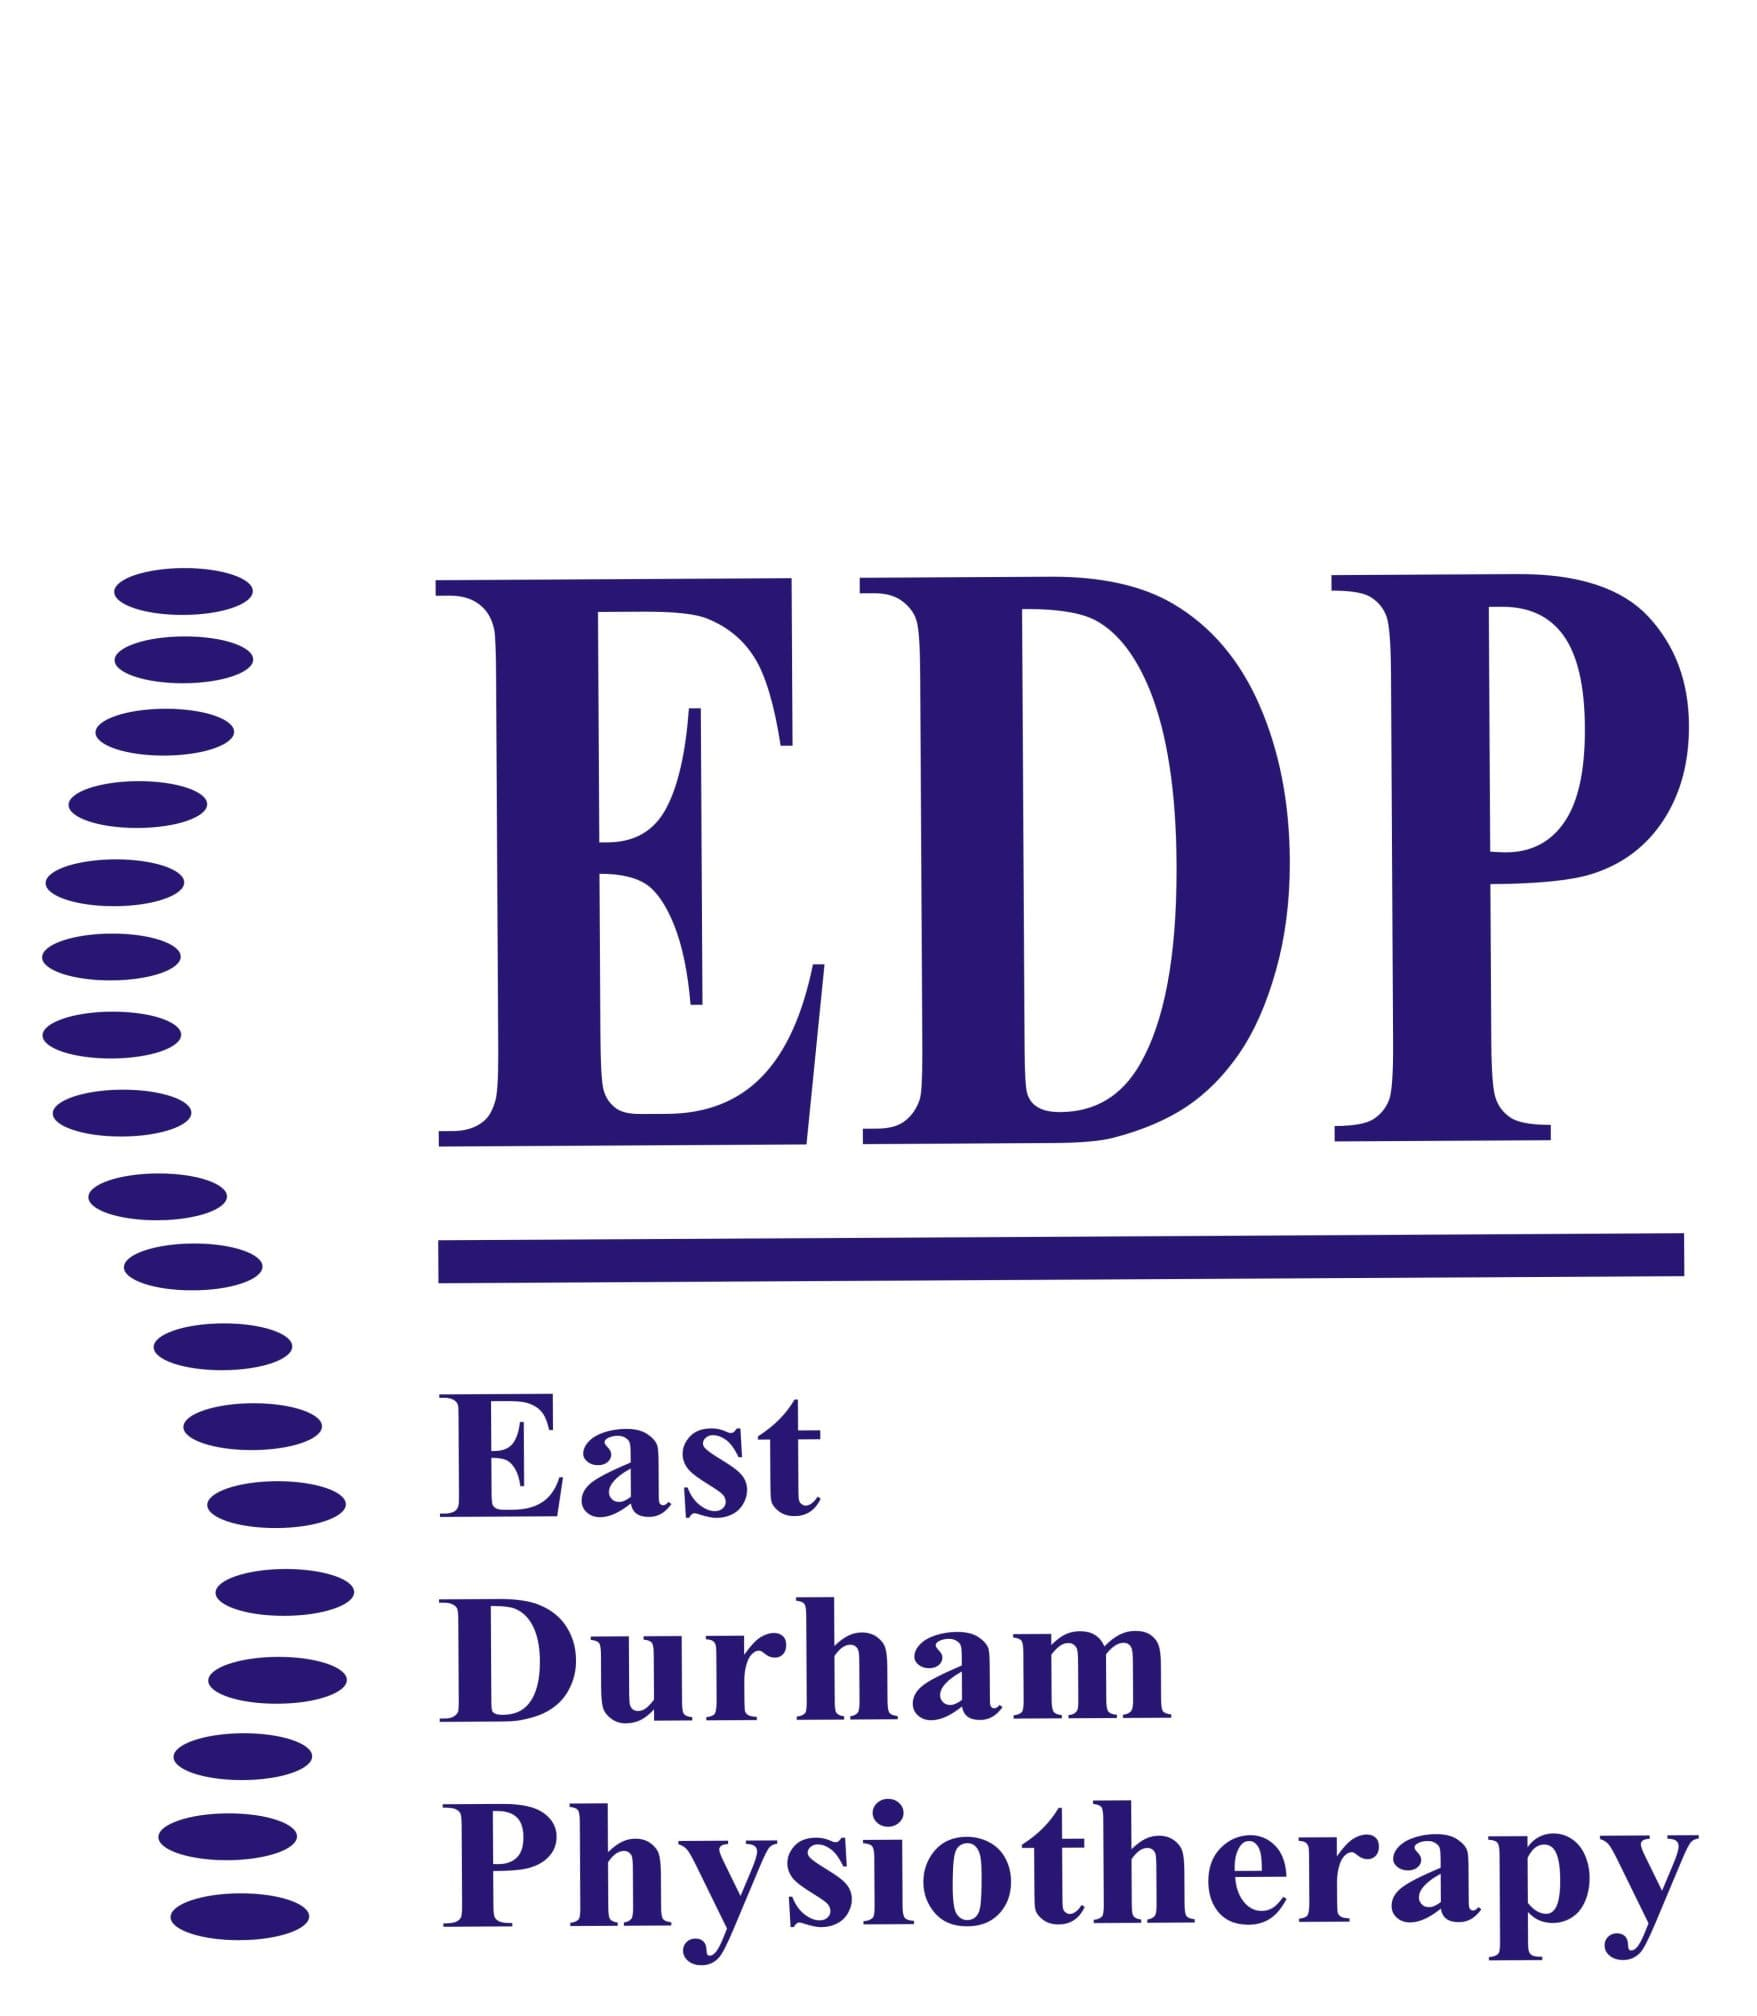 East Durham Physiotherapy & Sports Injury Clinic | Stockton Road, Hartlepool TS27 4SH | +44 1429 838335